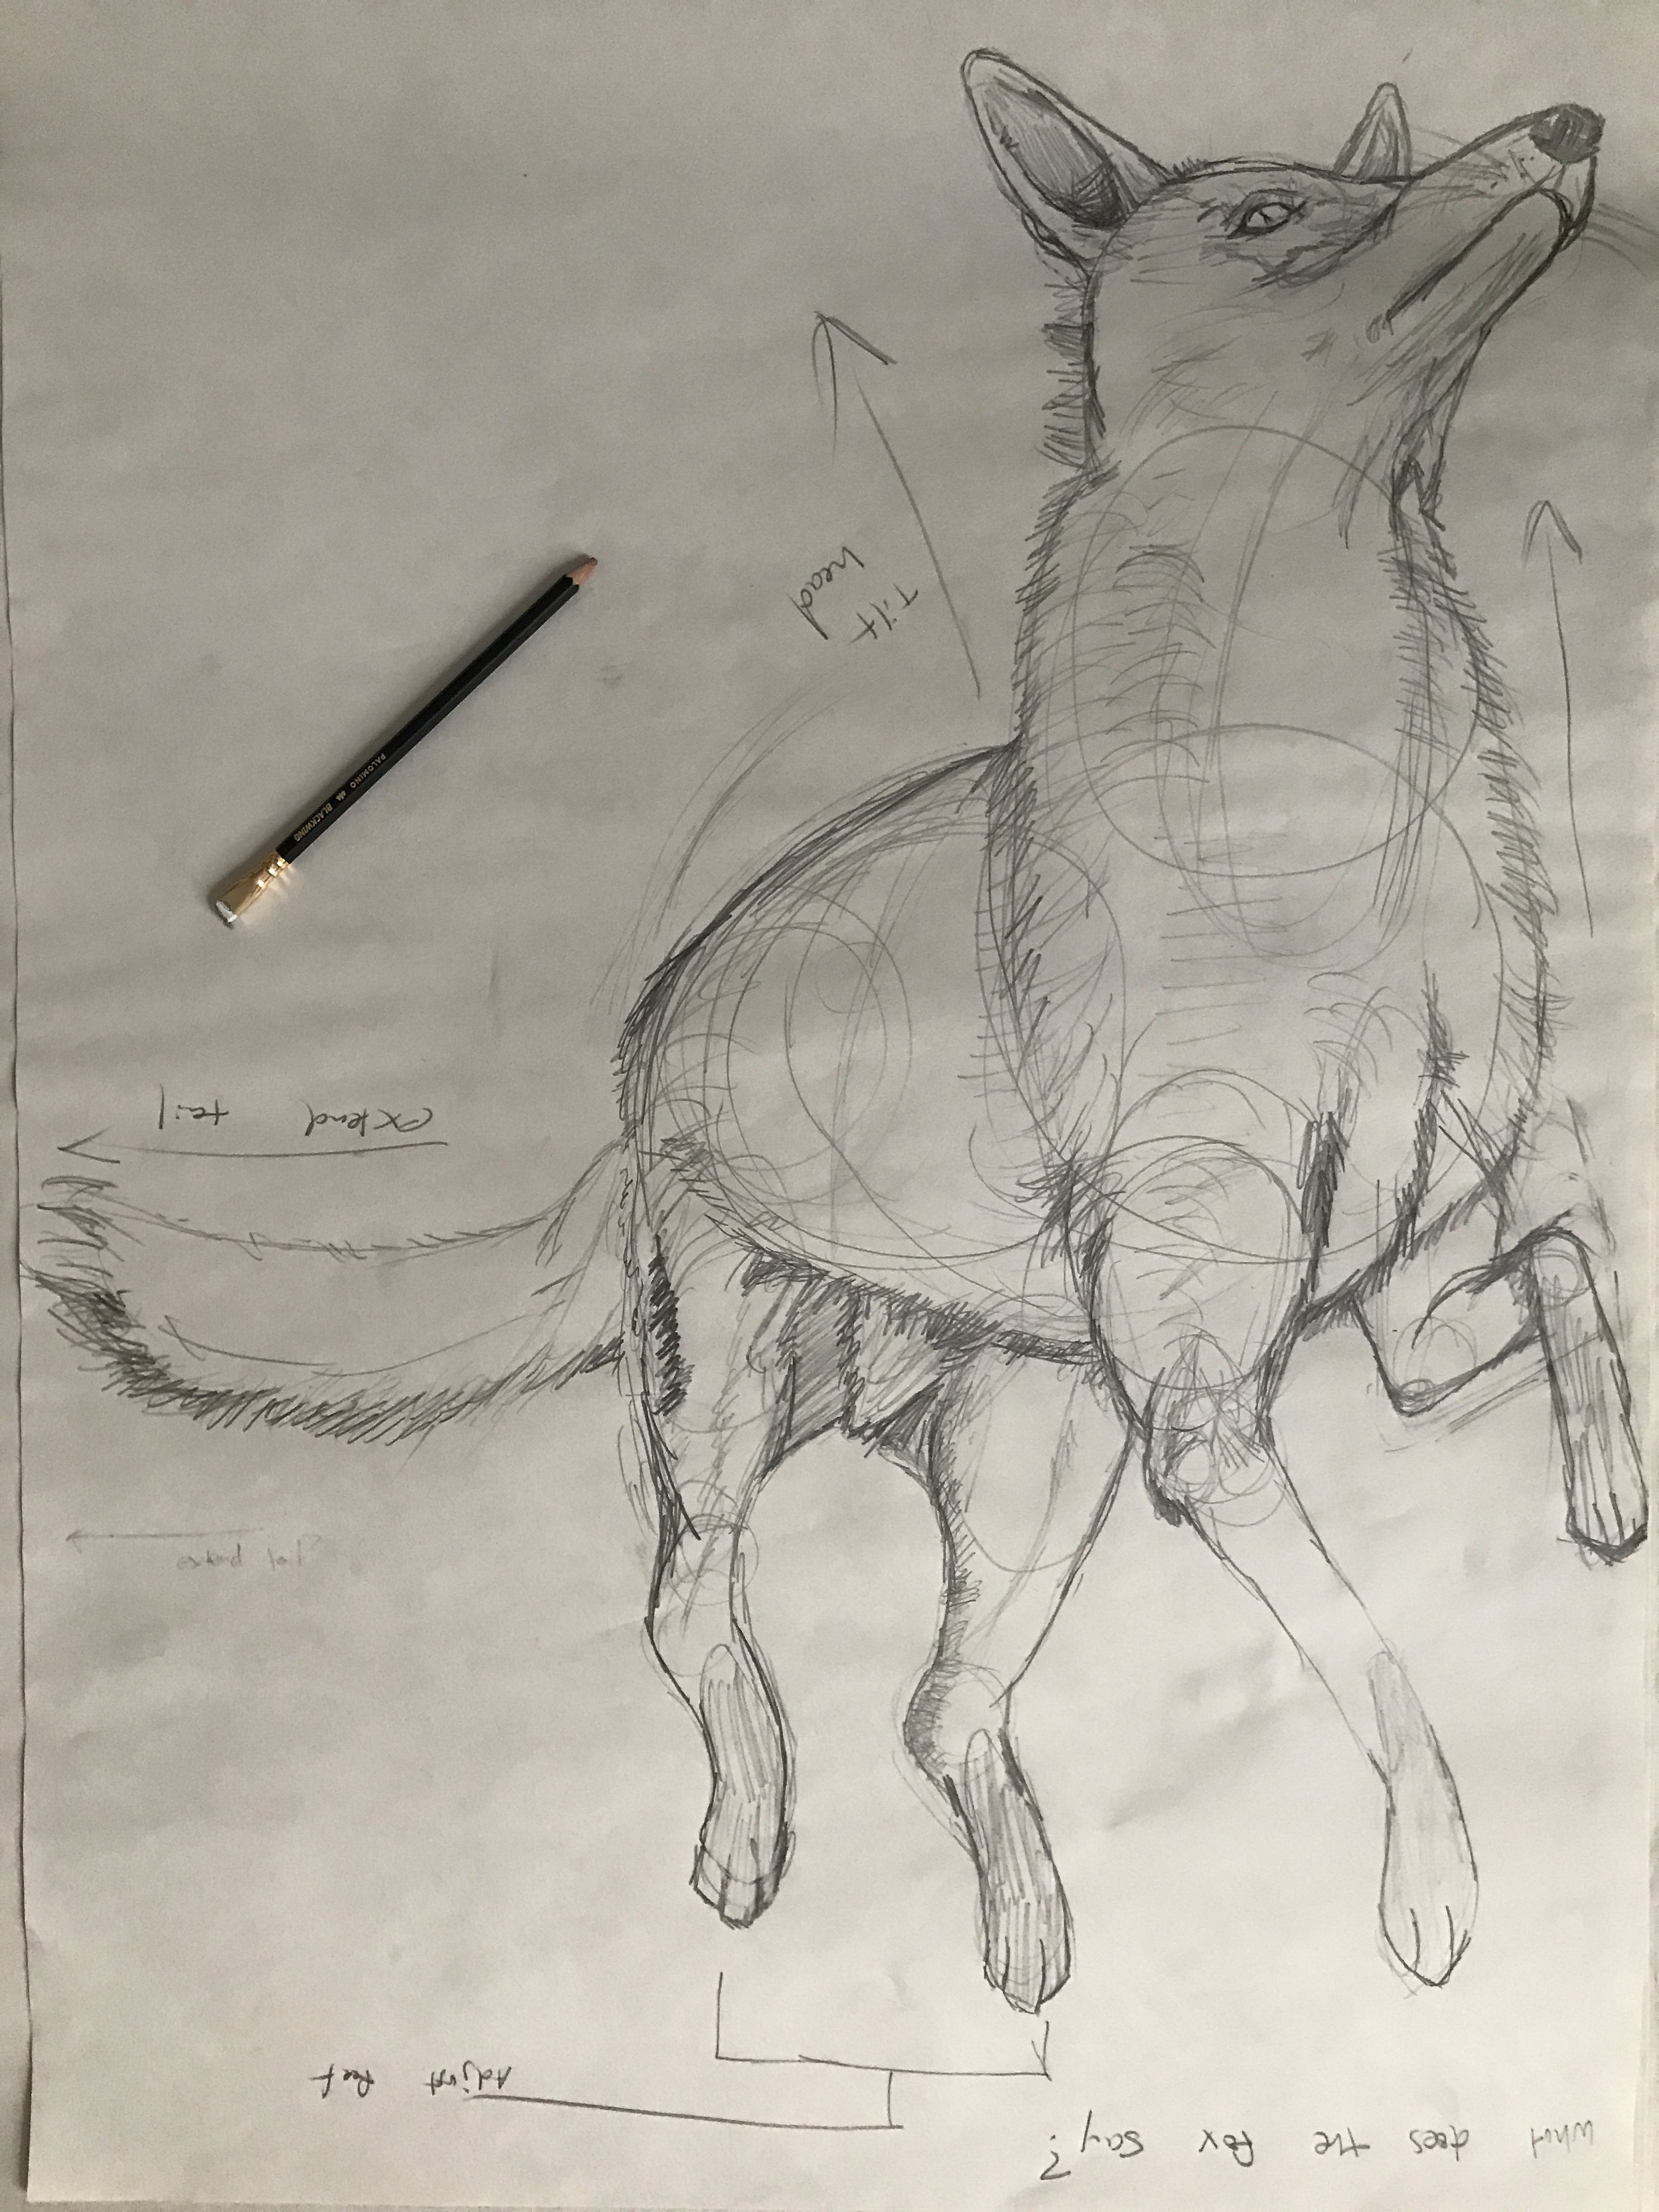 Sketch for a floating/falling animal and polomino blackwing pencil.